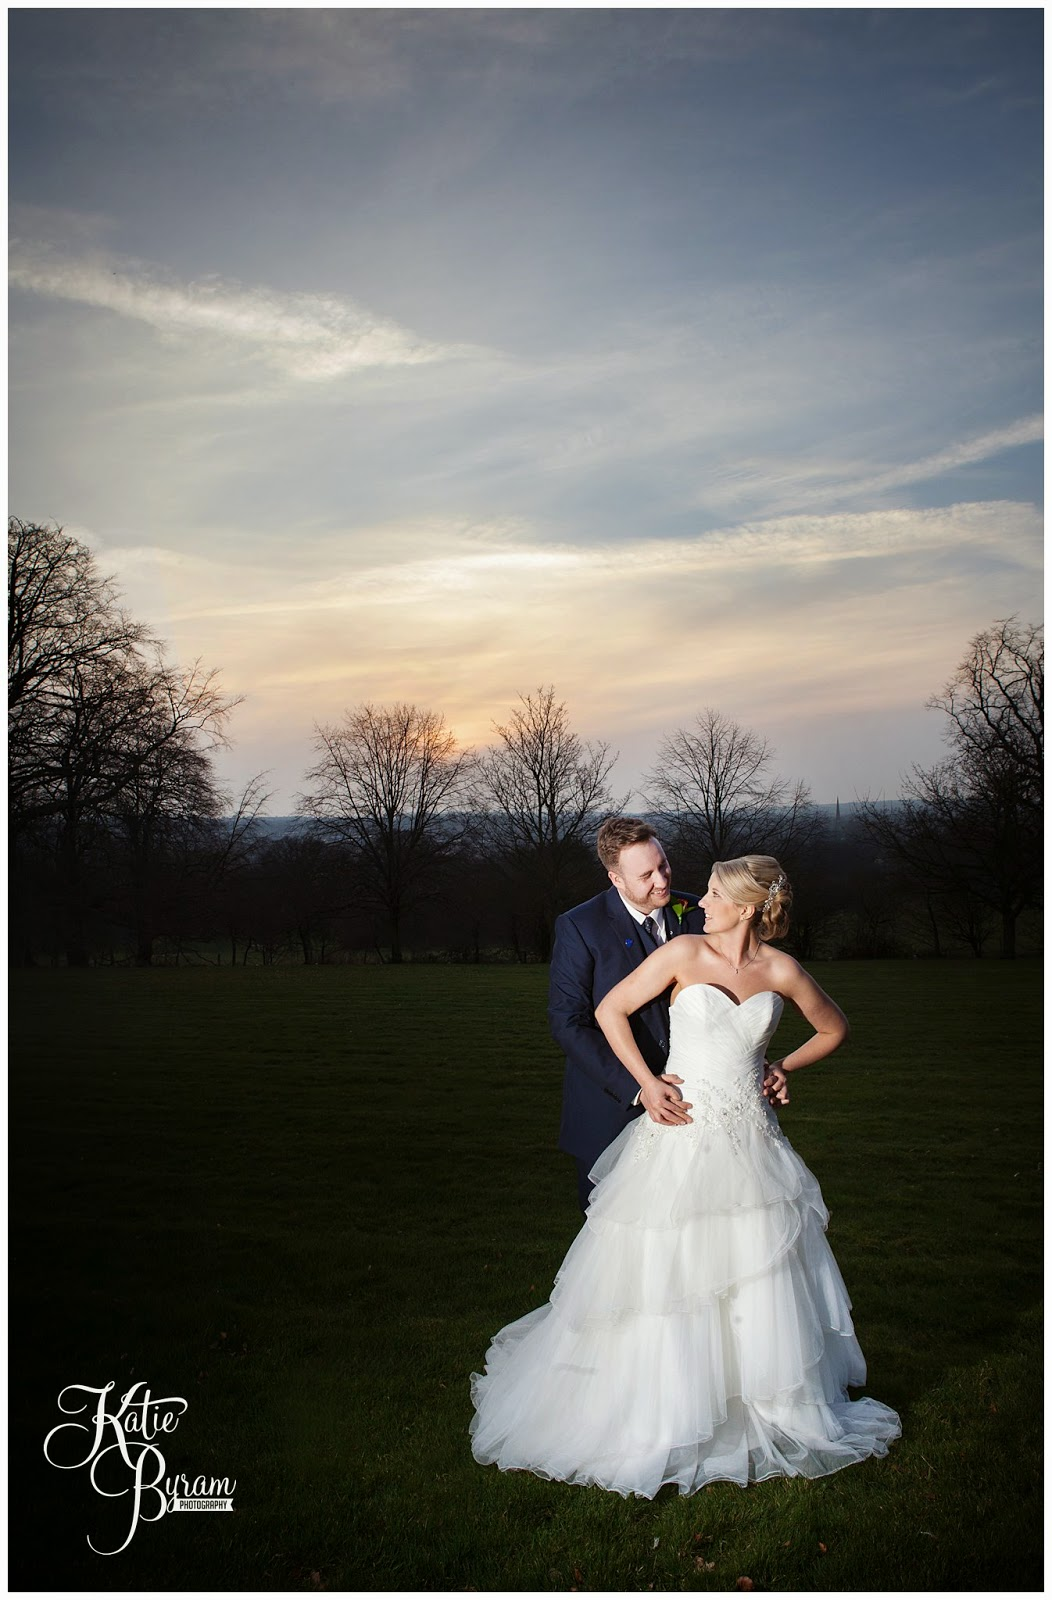 sunset wedding photograph, off camera flash wedding, lumley castle wedding, durham wedding, katie byram photography, diane harbridge, carli peirson make up, the big event make up, wedding venues north east, northumberland wedding, quirky wedding photography, travel themed wedding, castle wedding north east, newcastle wedding, chester-le-street